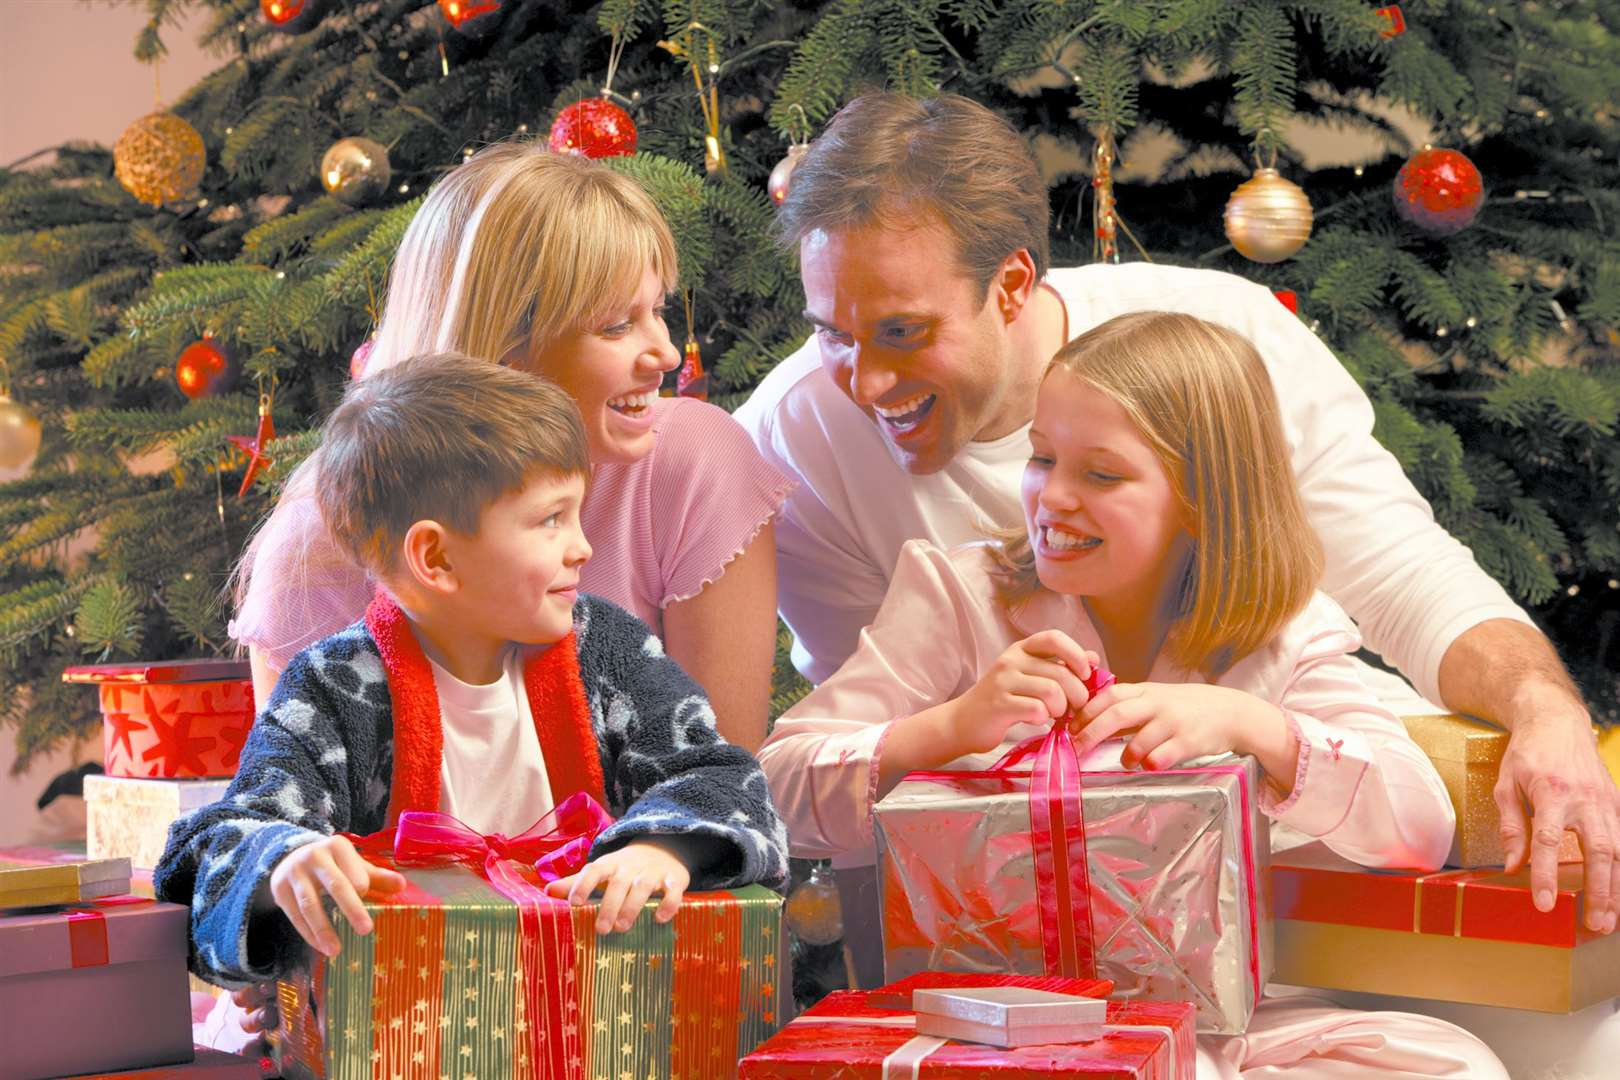 As global shipping issues and labor shortages continue to plague business supply chains, parents are being warned to buy Christmas toys early